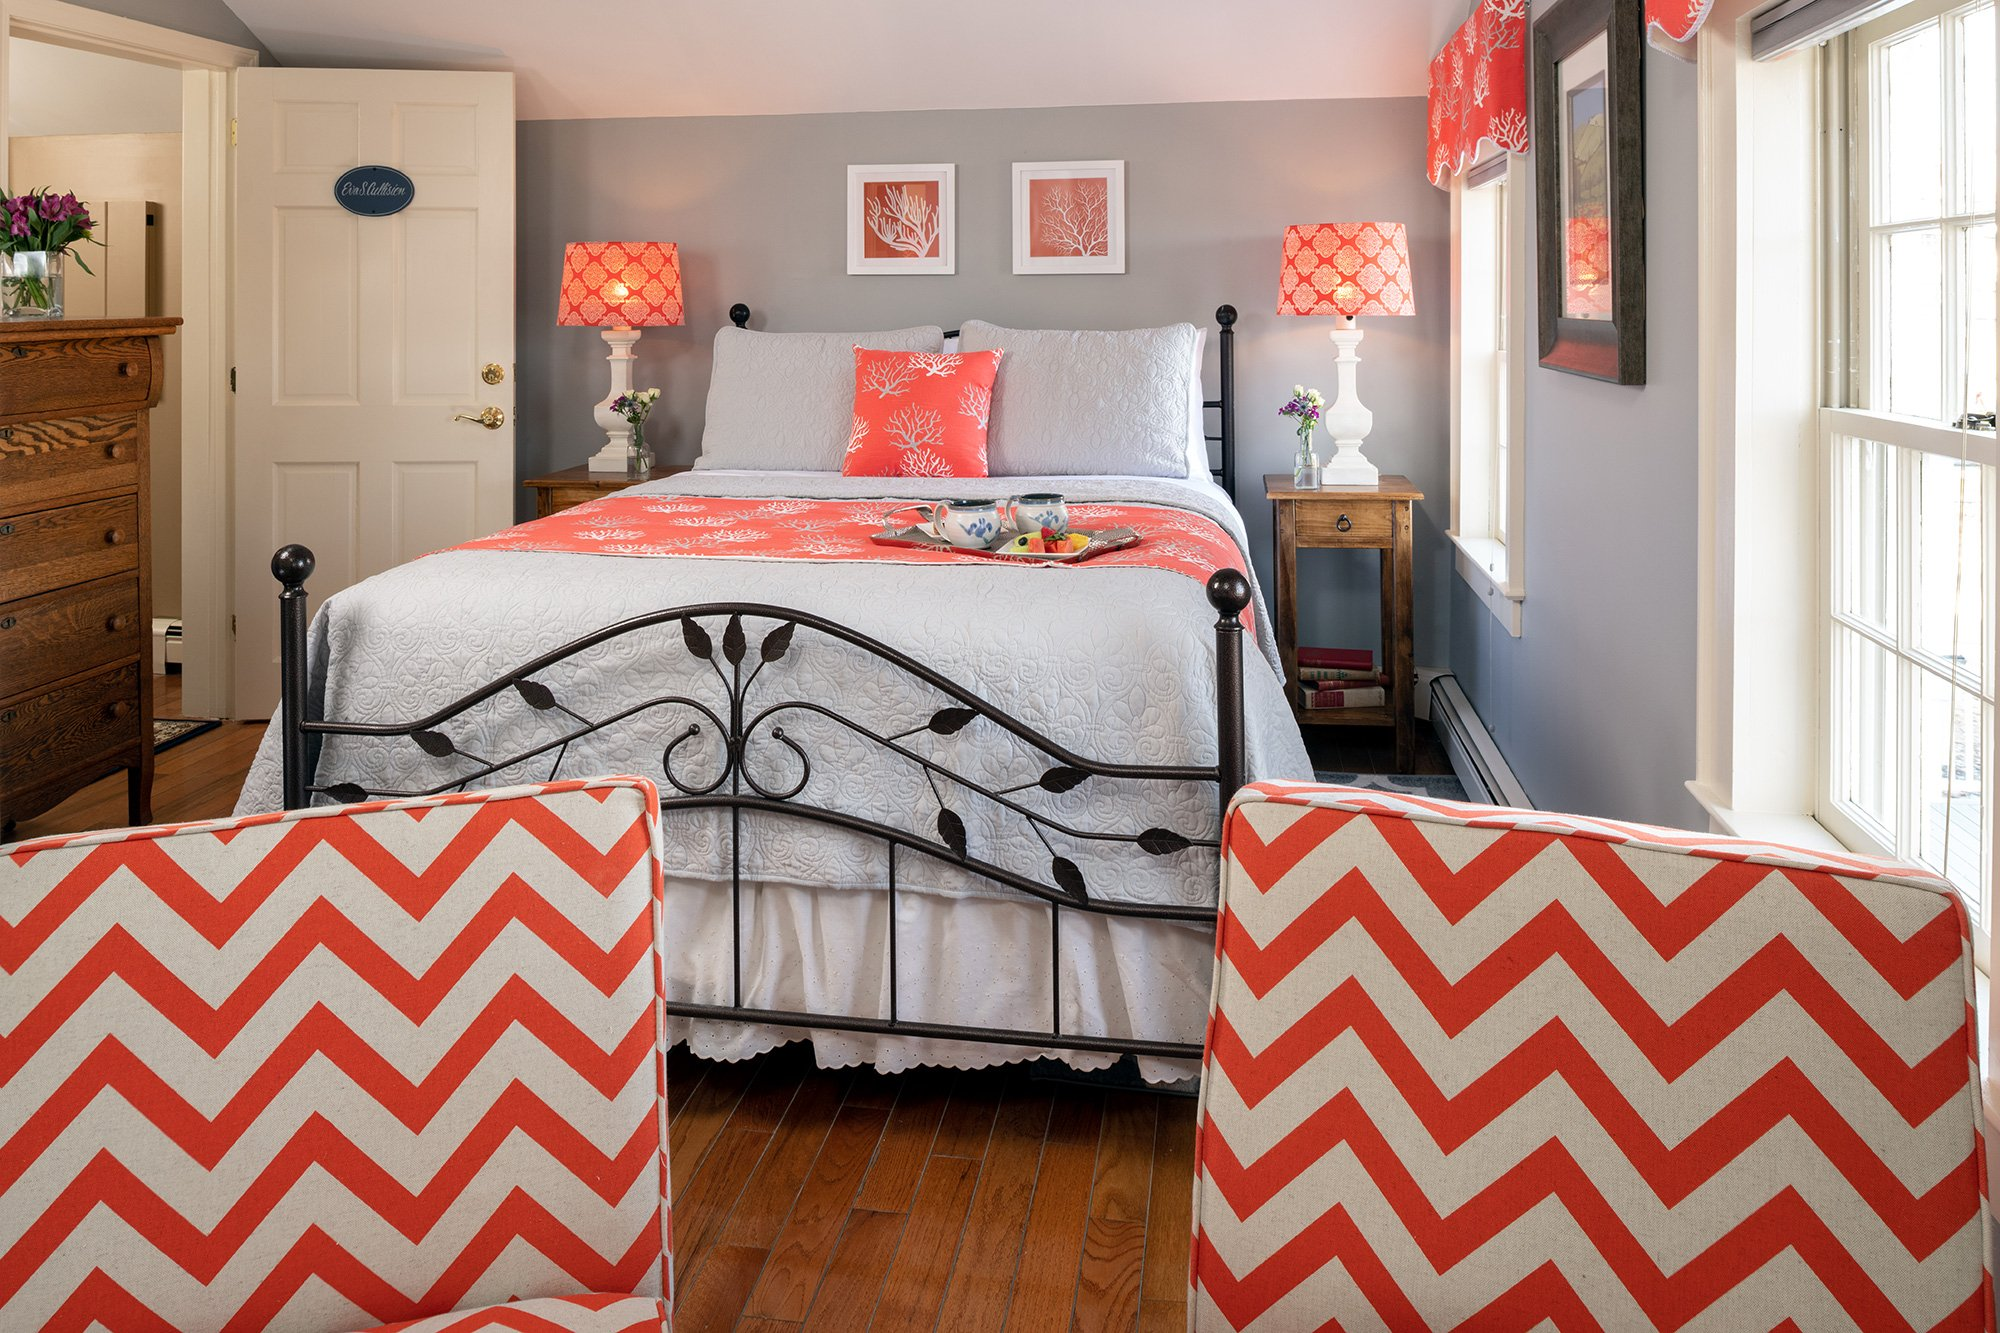 cast iron bed with orange accents